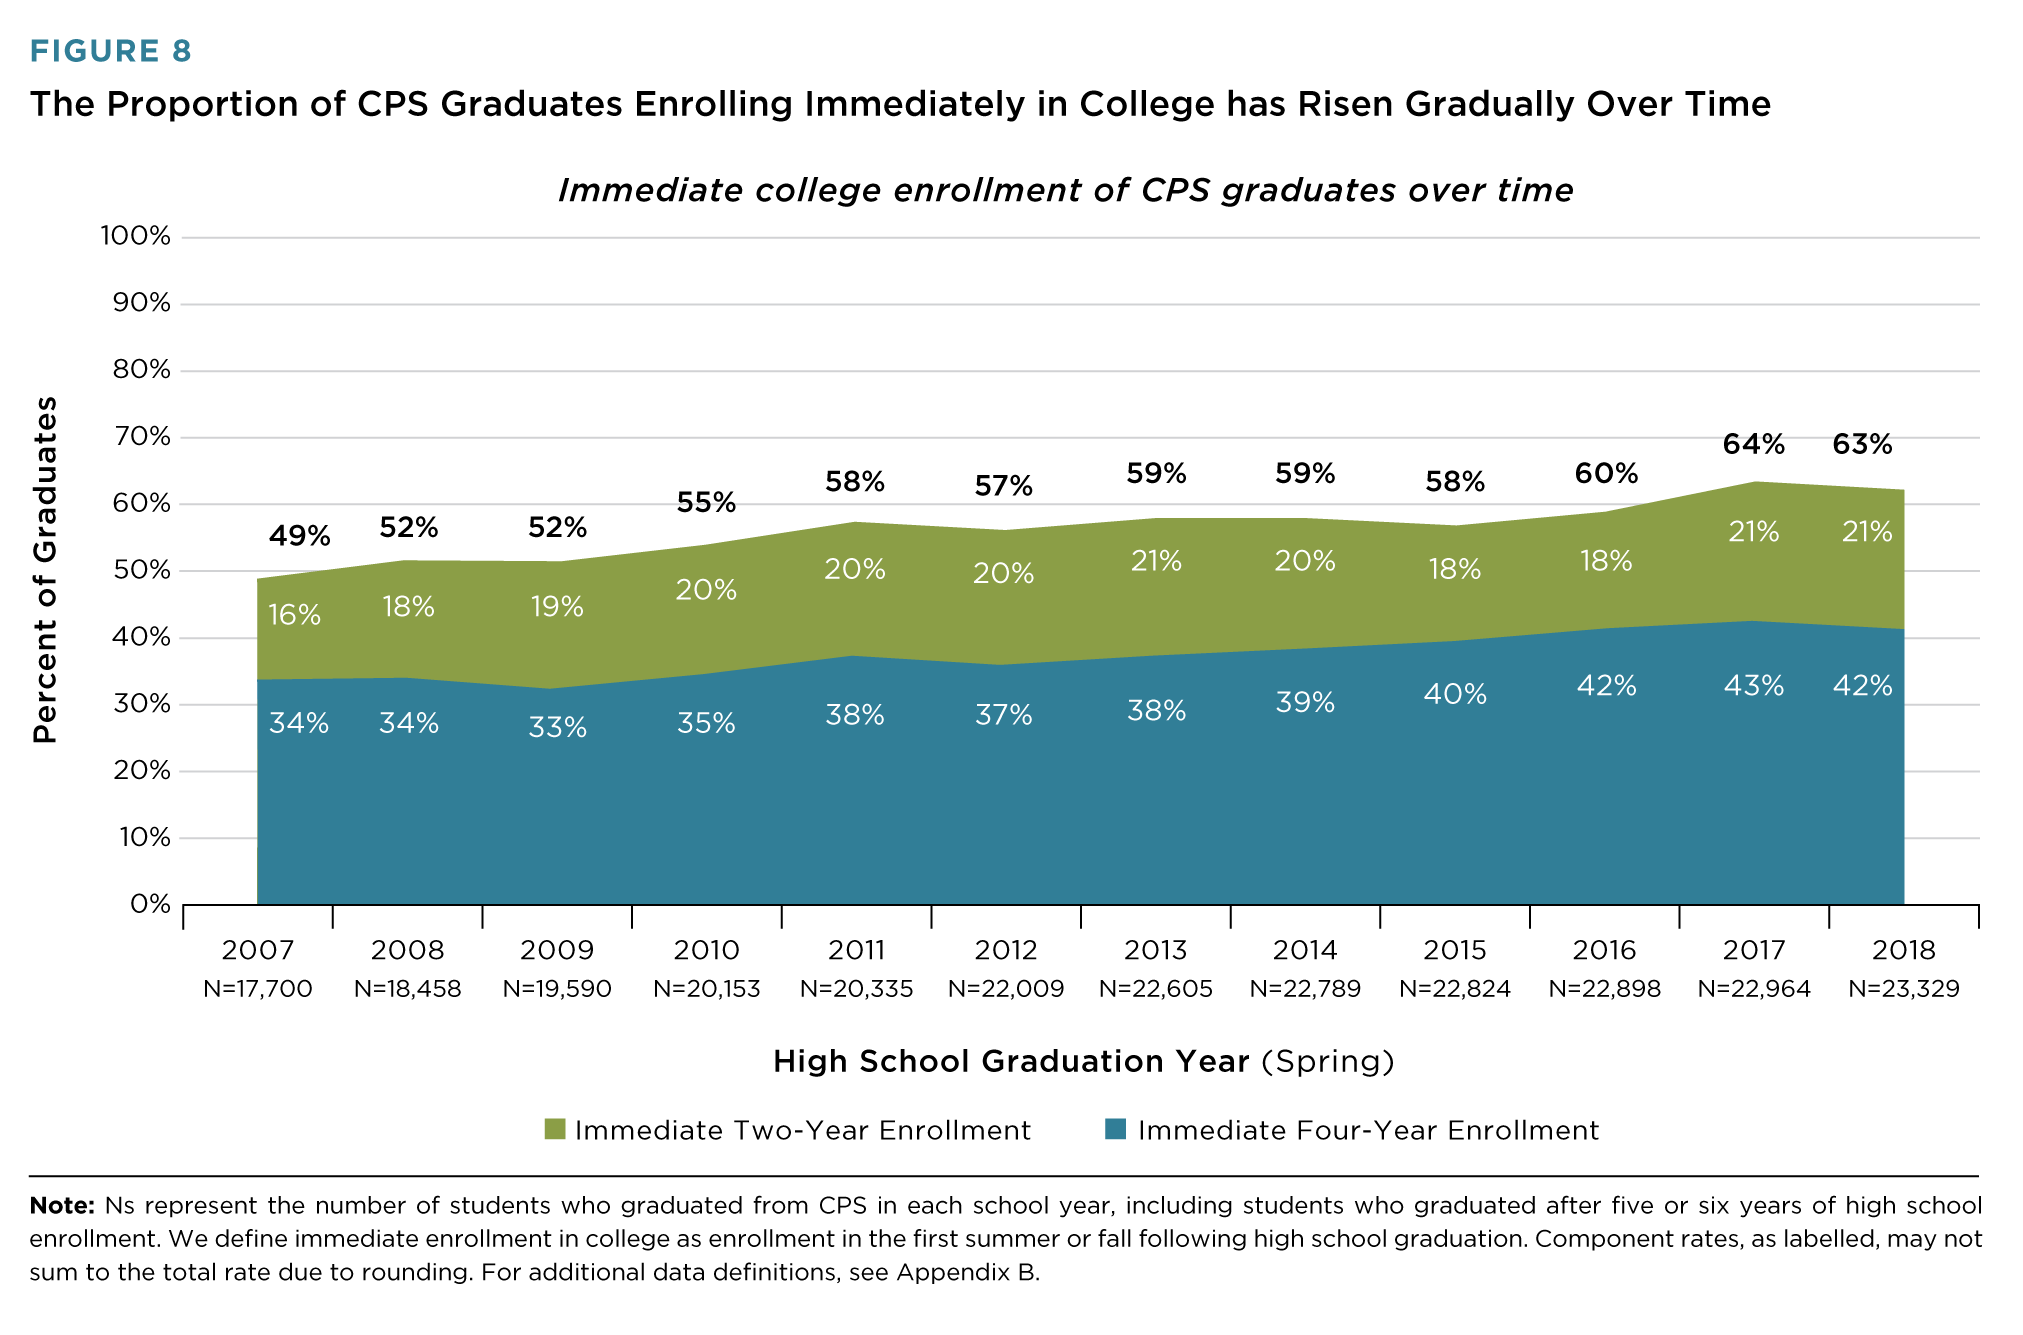 CPS College Enrollment Increasing